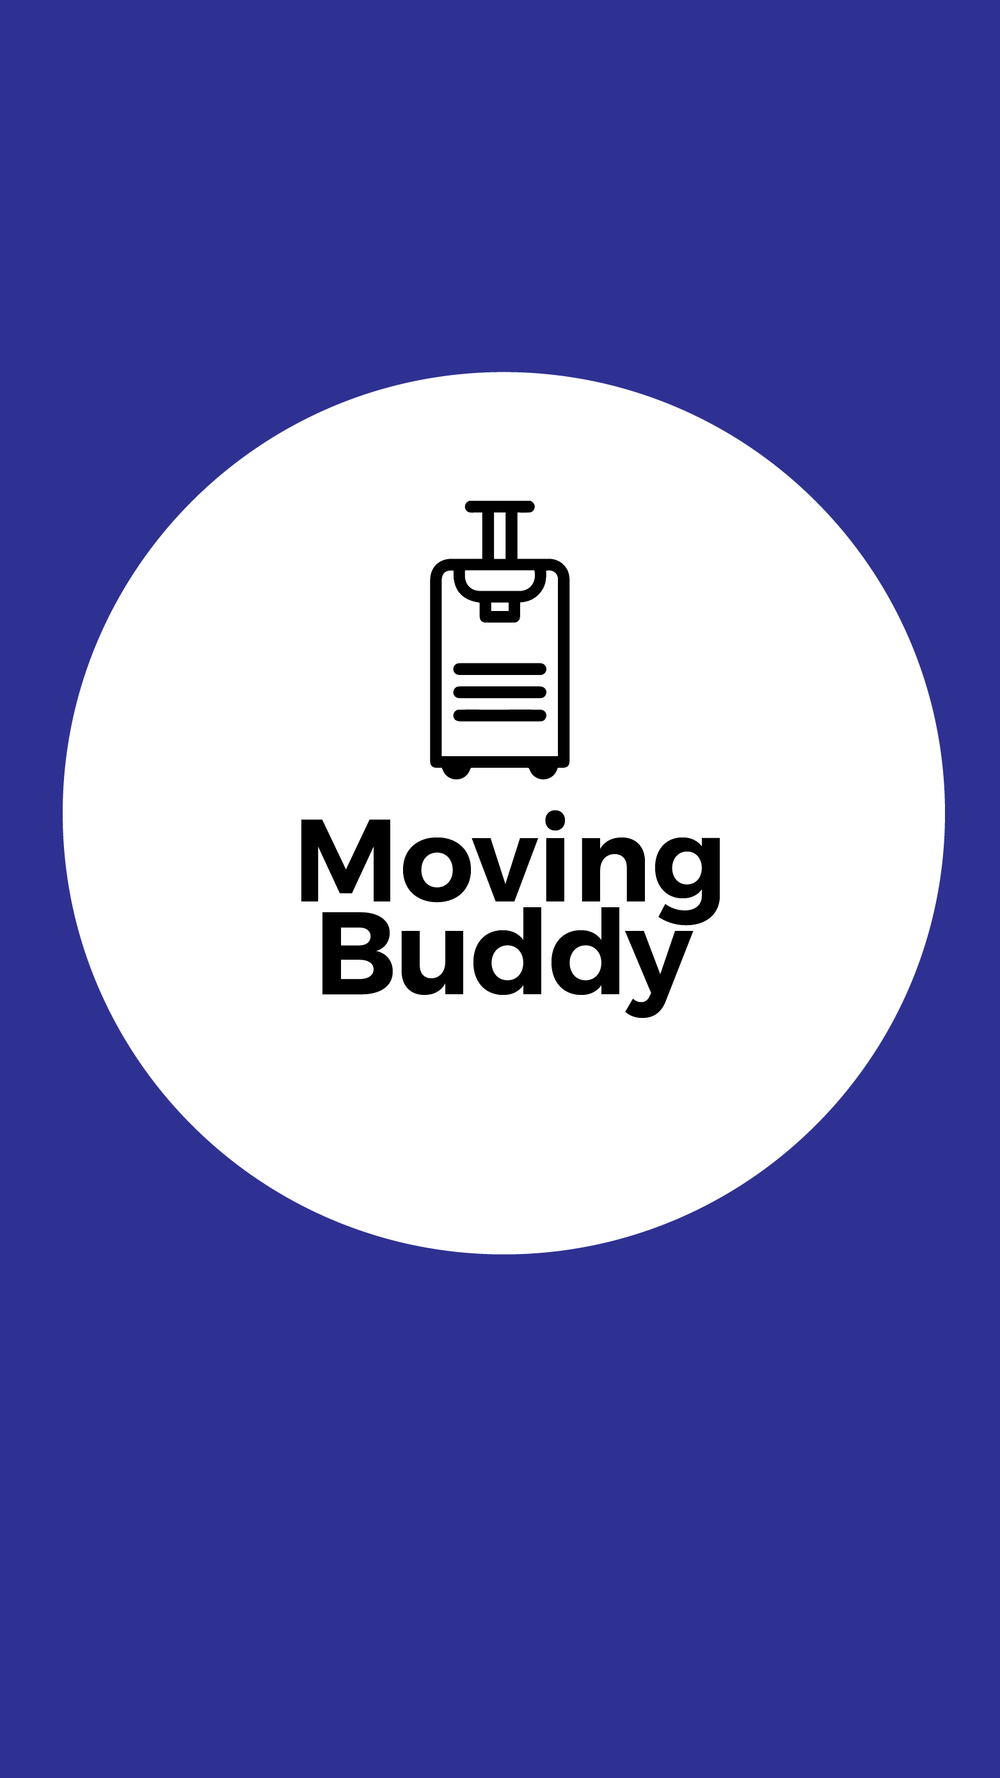 movingBuddy_v6_12.10.16-01.png